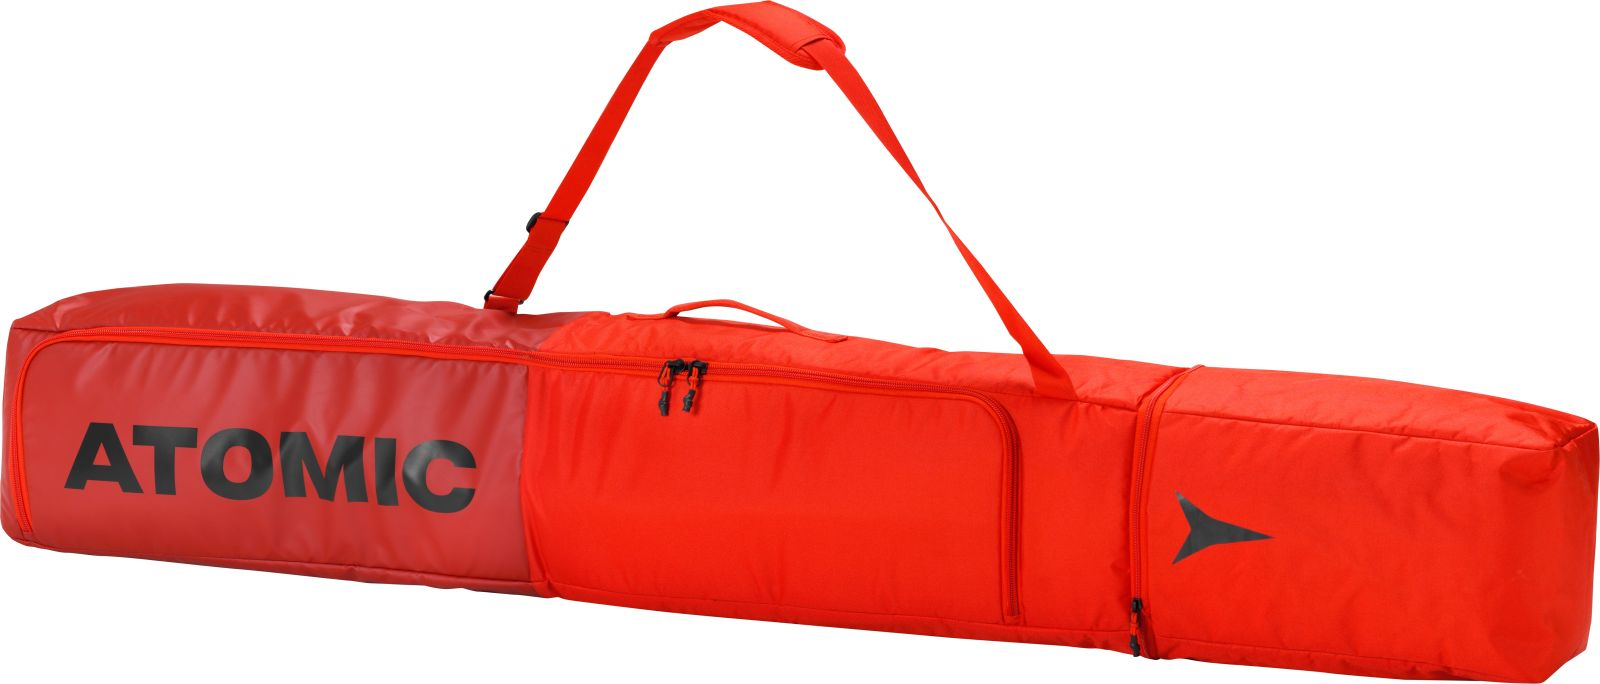 Atomic Double Ski Bag bright red/red